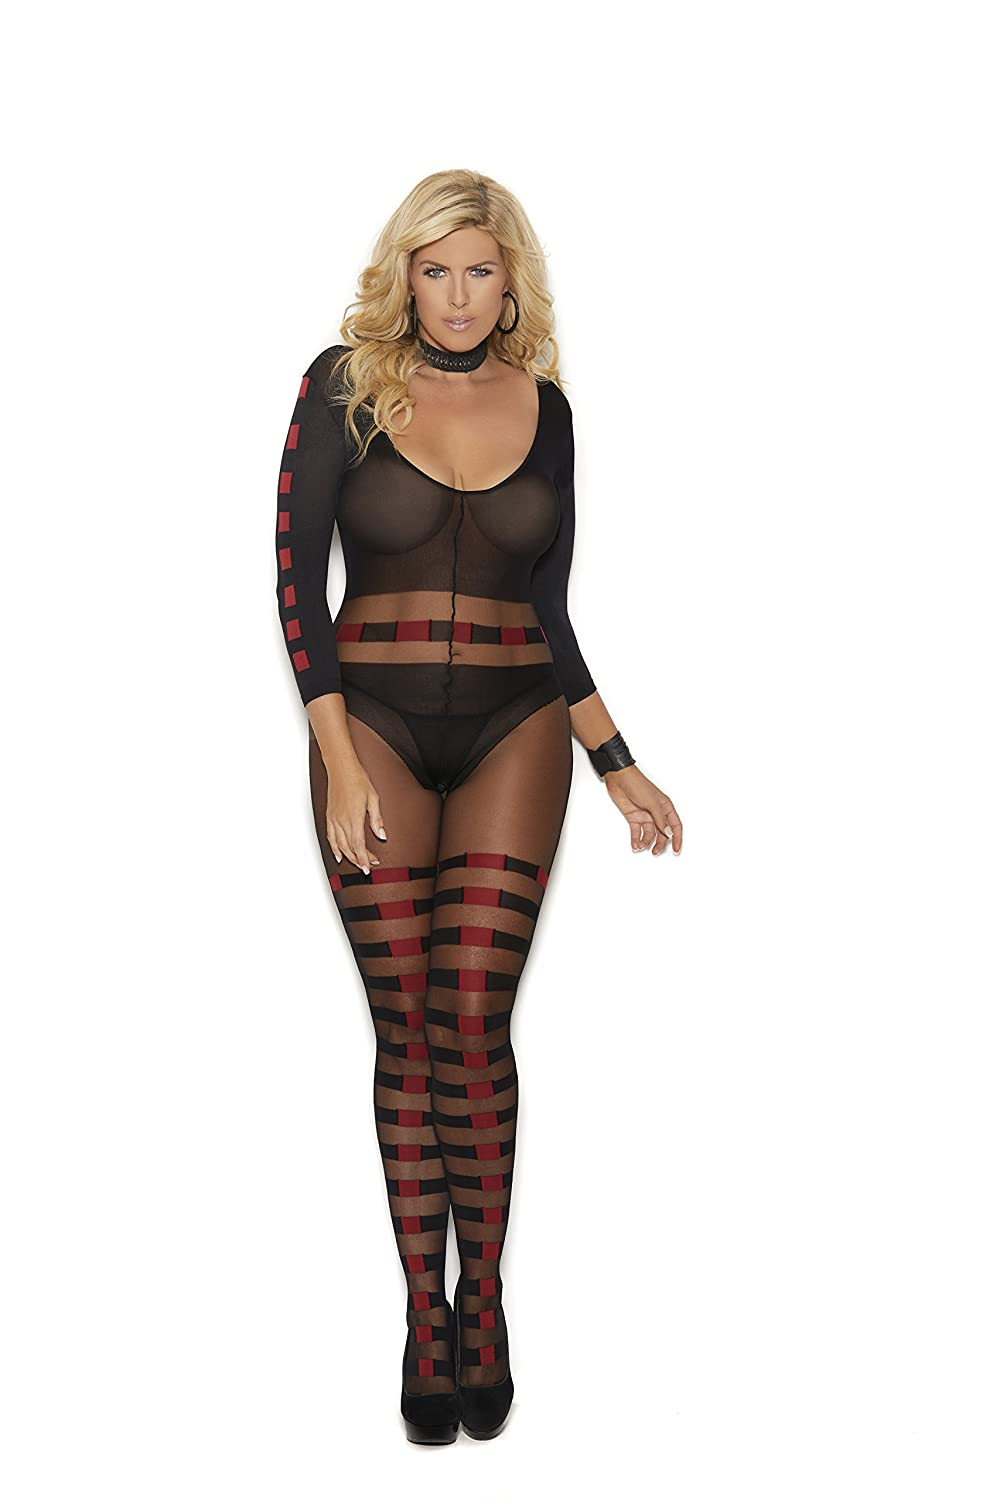 076c4bb8fa Amazon.com  Sheer and Opaque Long Sleeve Bodystocking with Red and Black  Checkered Horizontal Stripes and an Open Crotch (One Size)  Clothing